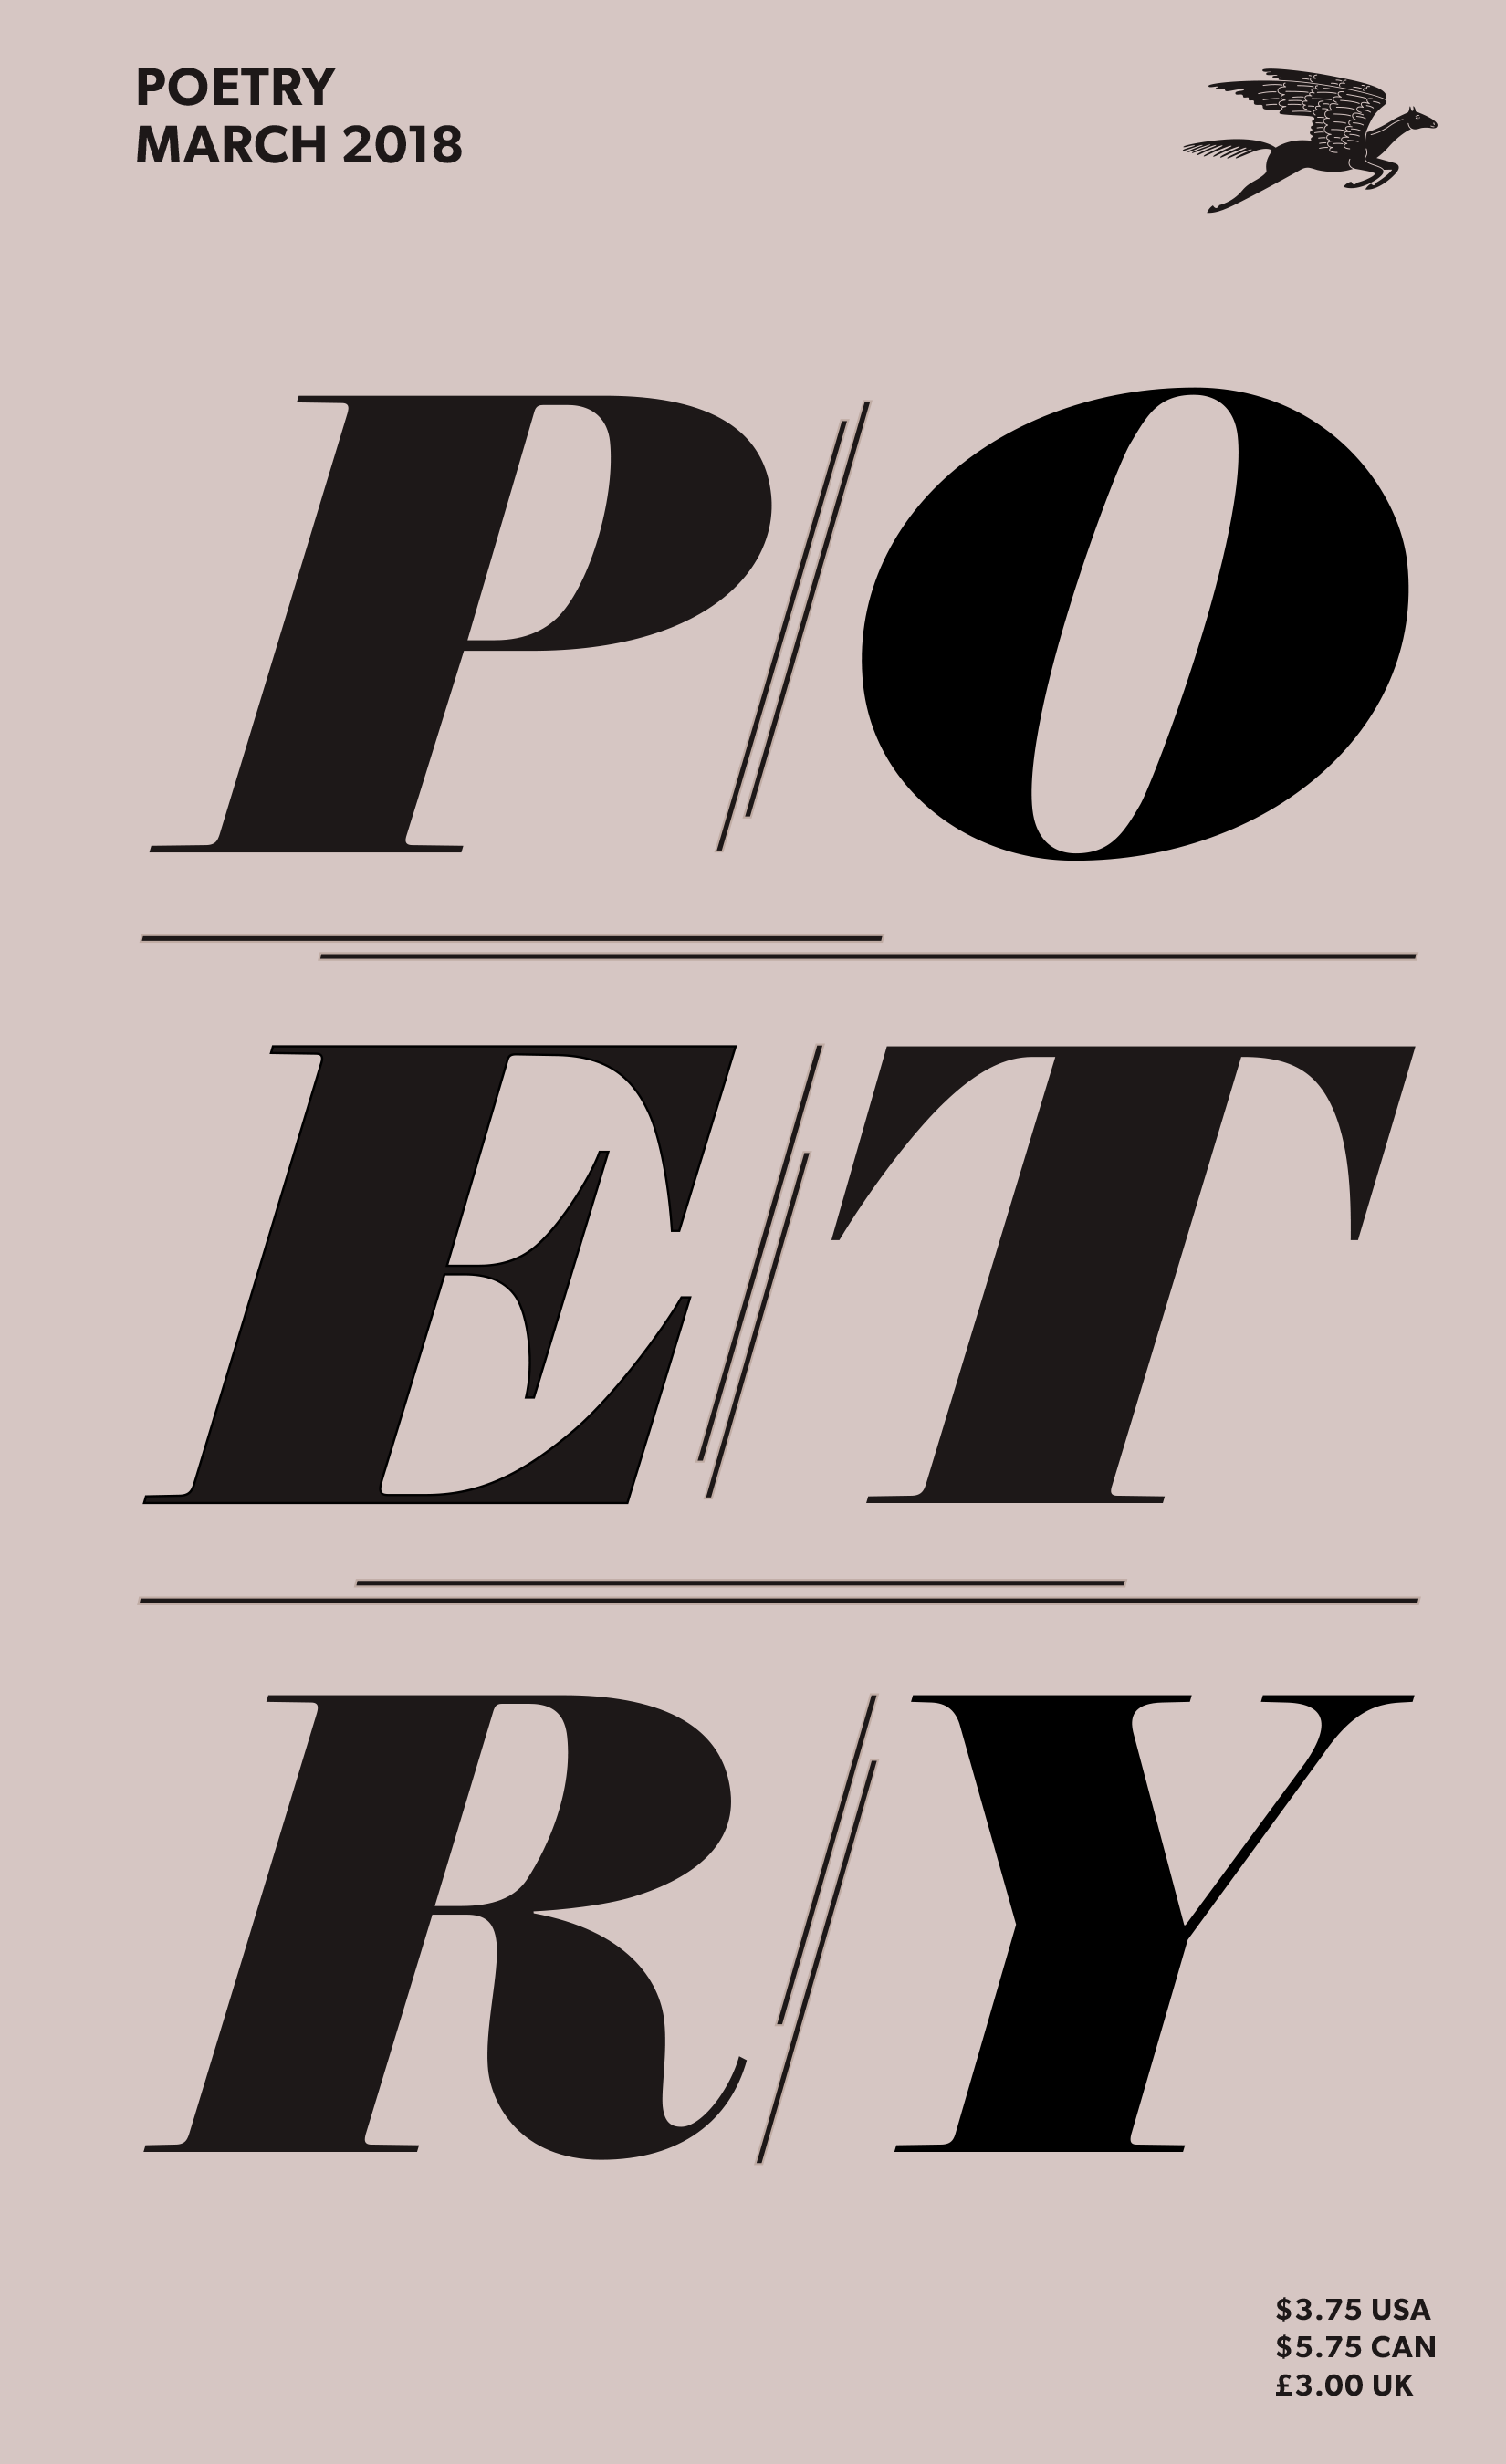 March 2018 Poetry Magazine cover